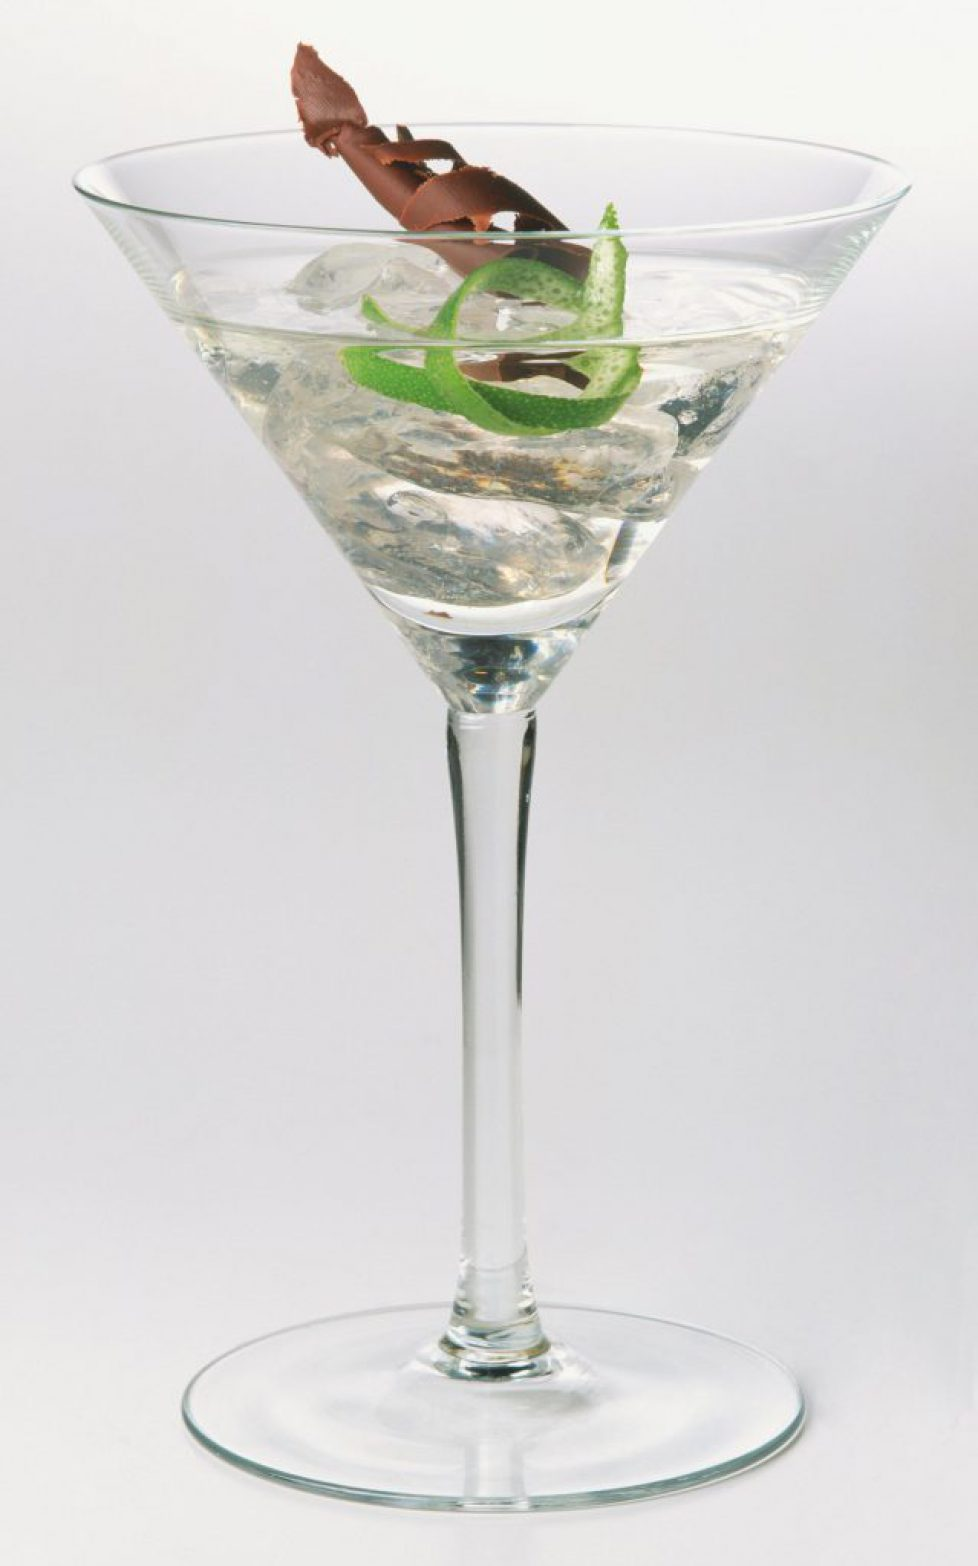 Nureyev, a vodka cocktail served in classic martini cocktail glass decorated with lime and chocolate shavings.